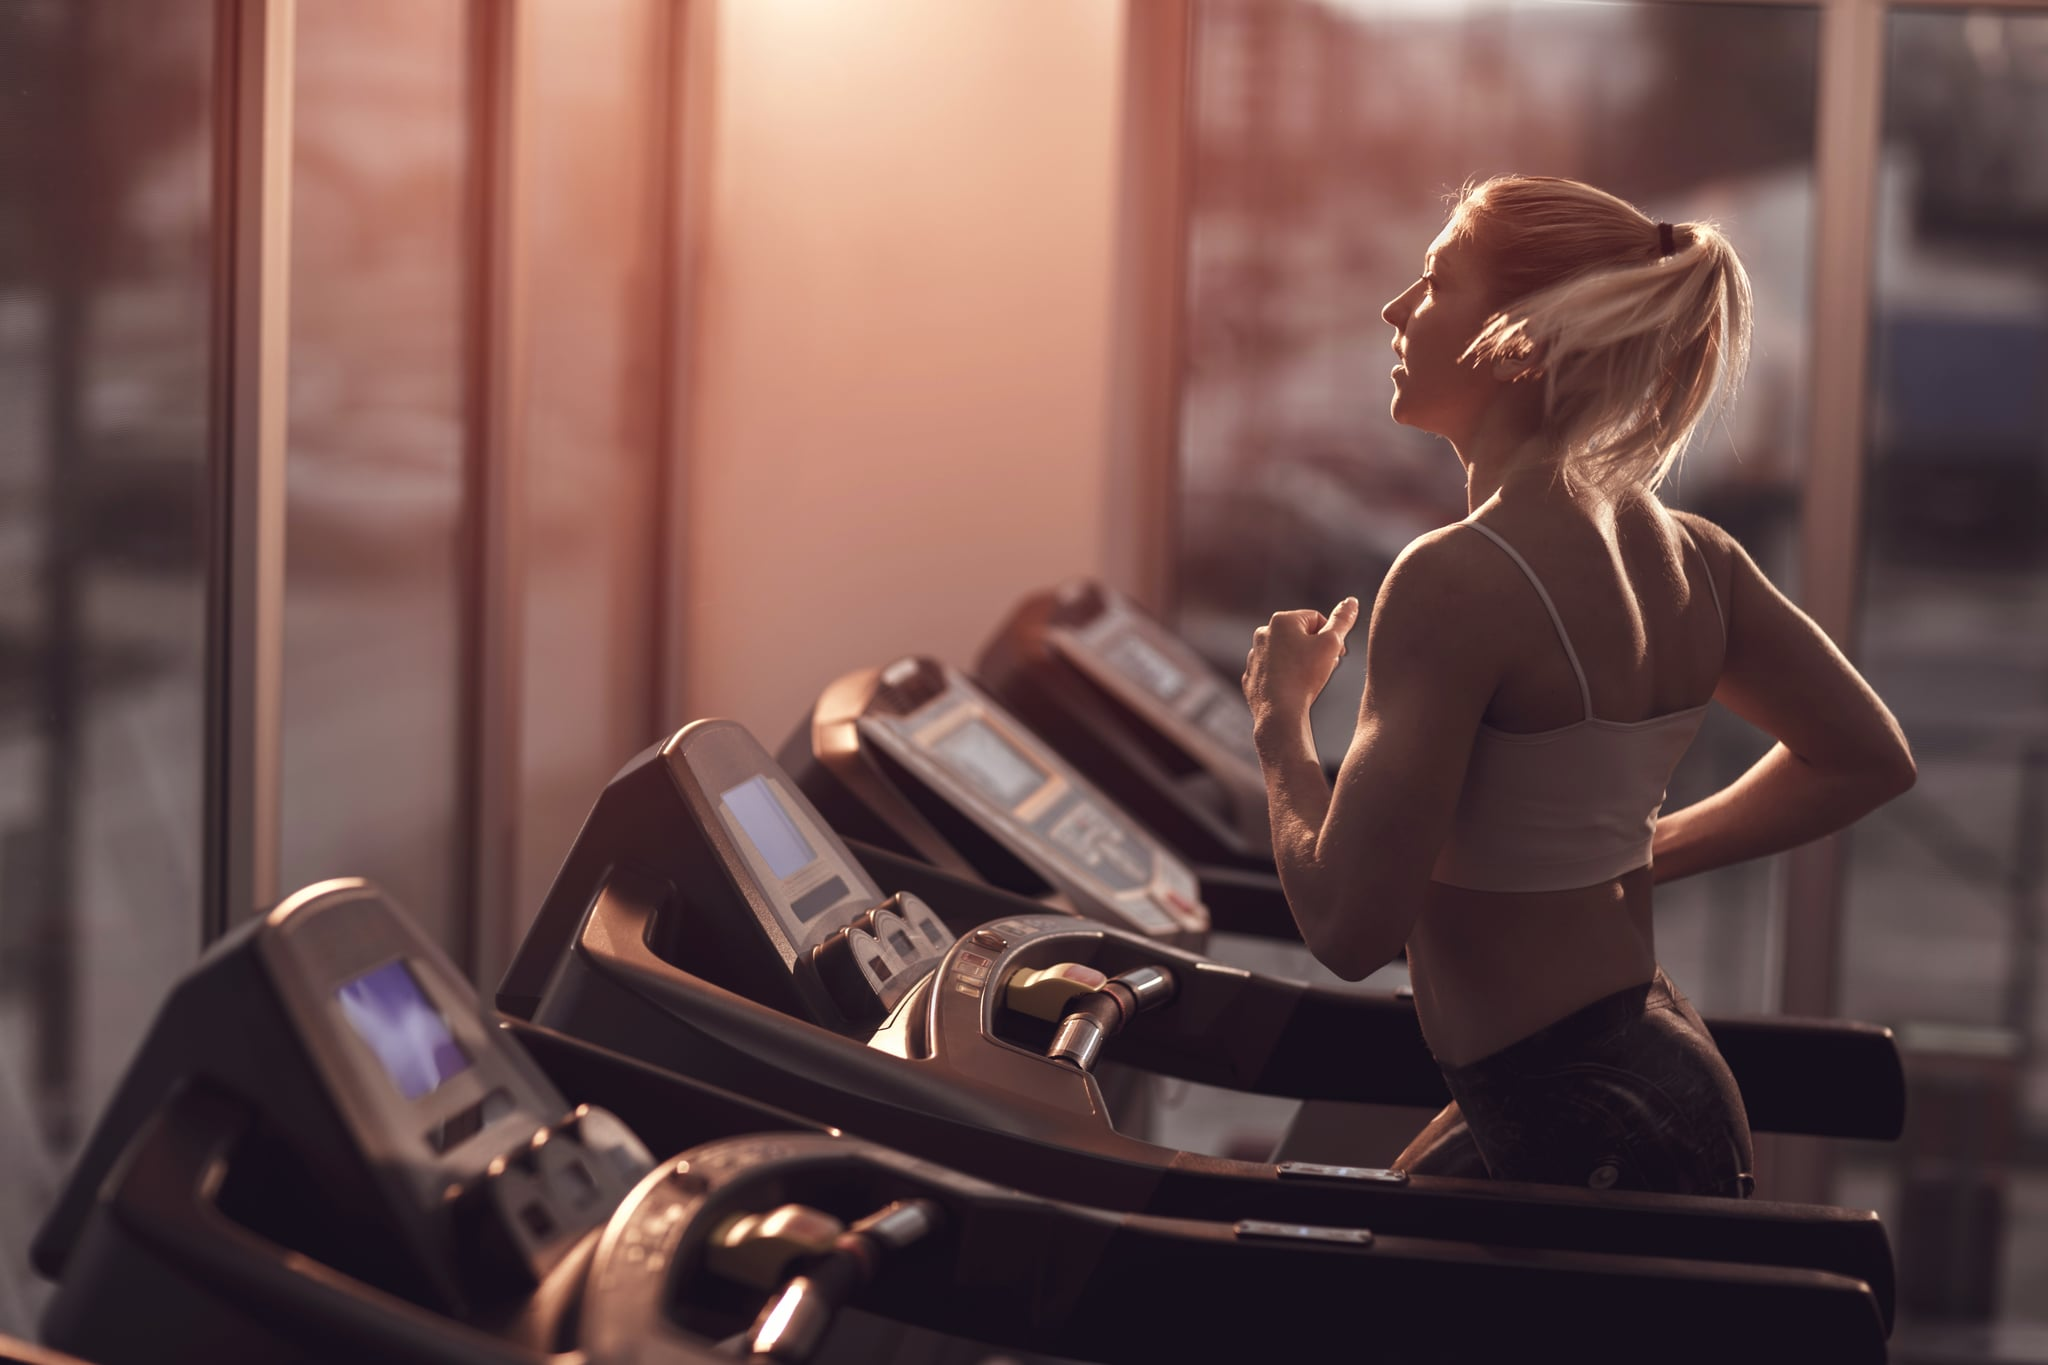 How Do You Do HIIT on a Treadmill? | POPSUGAR Fitness UK